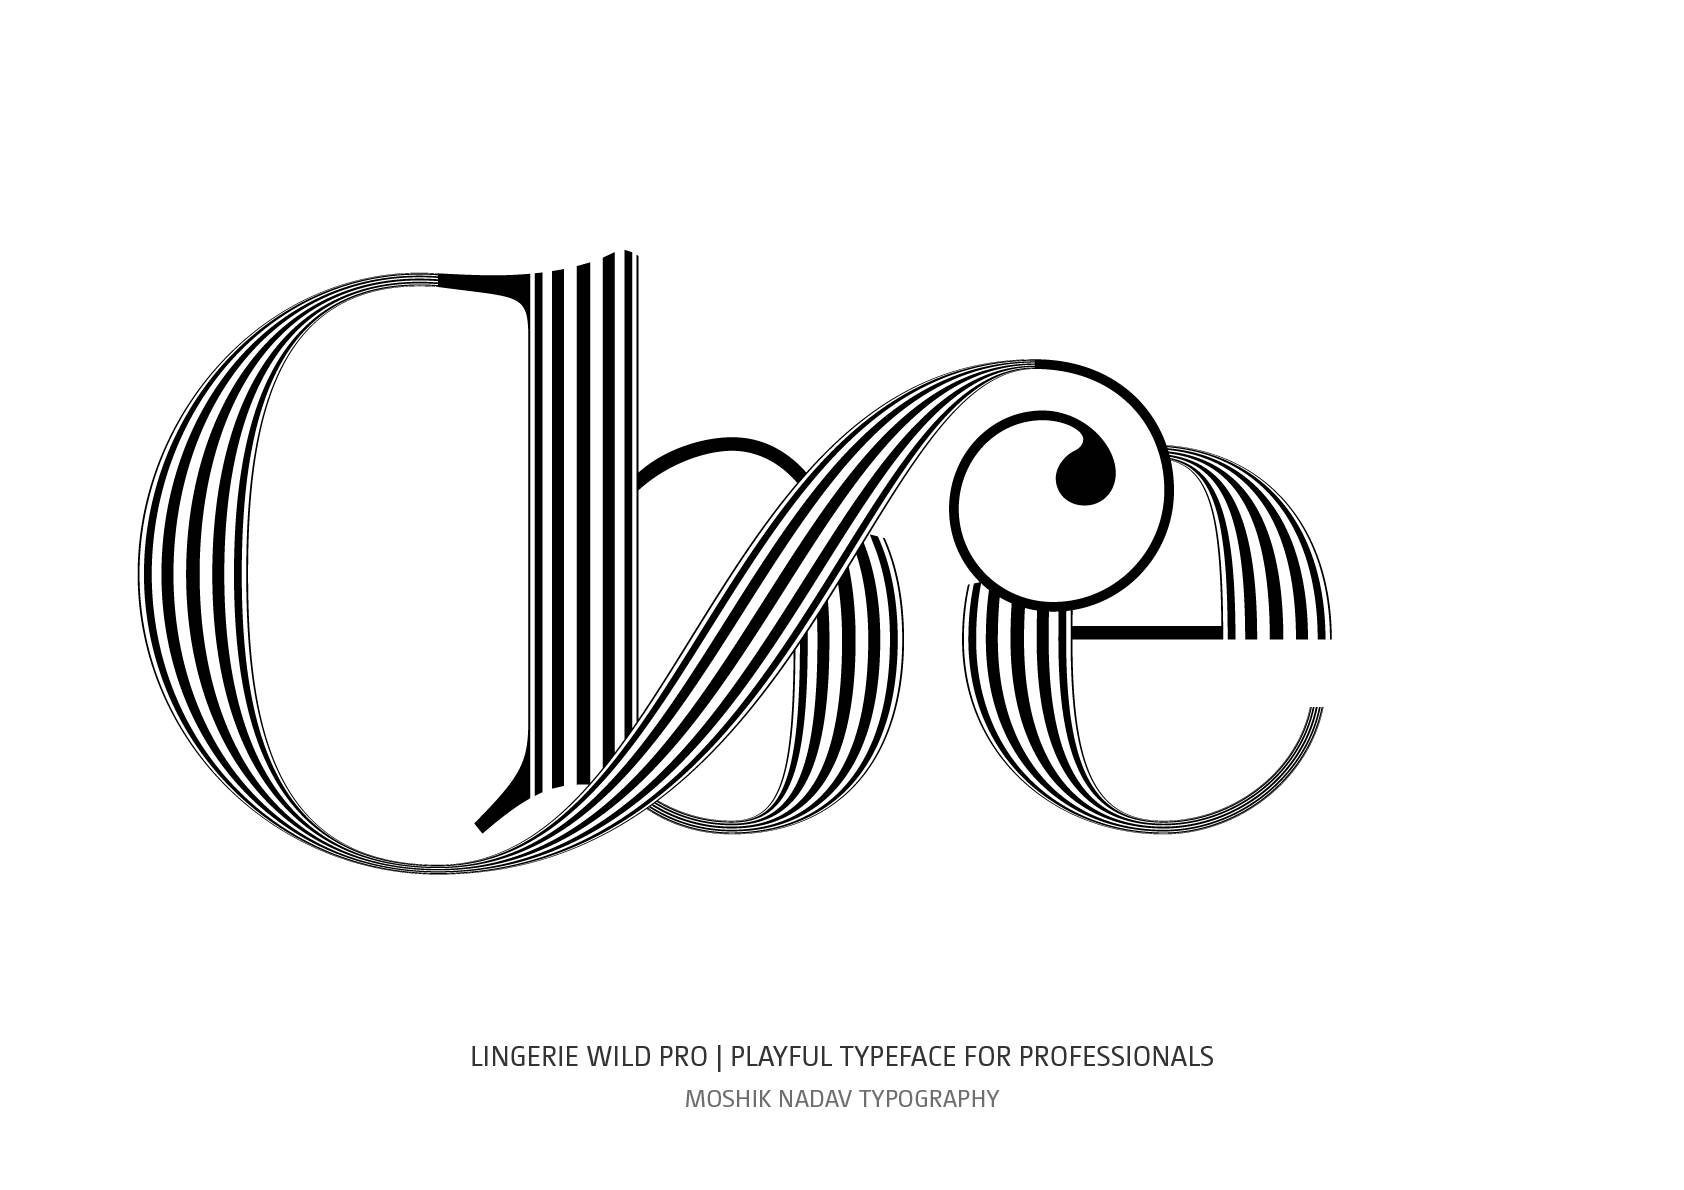 cool ligatures for fashion brands and fashion magazines by Moshik Nadav Typography